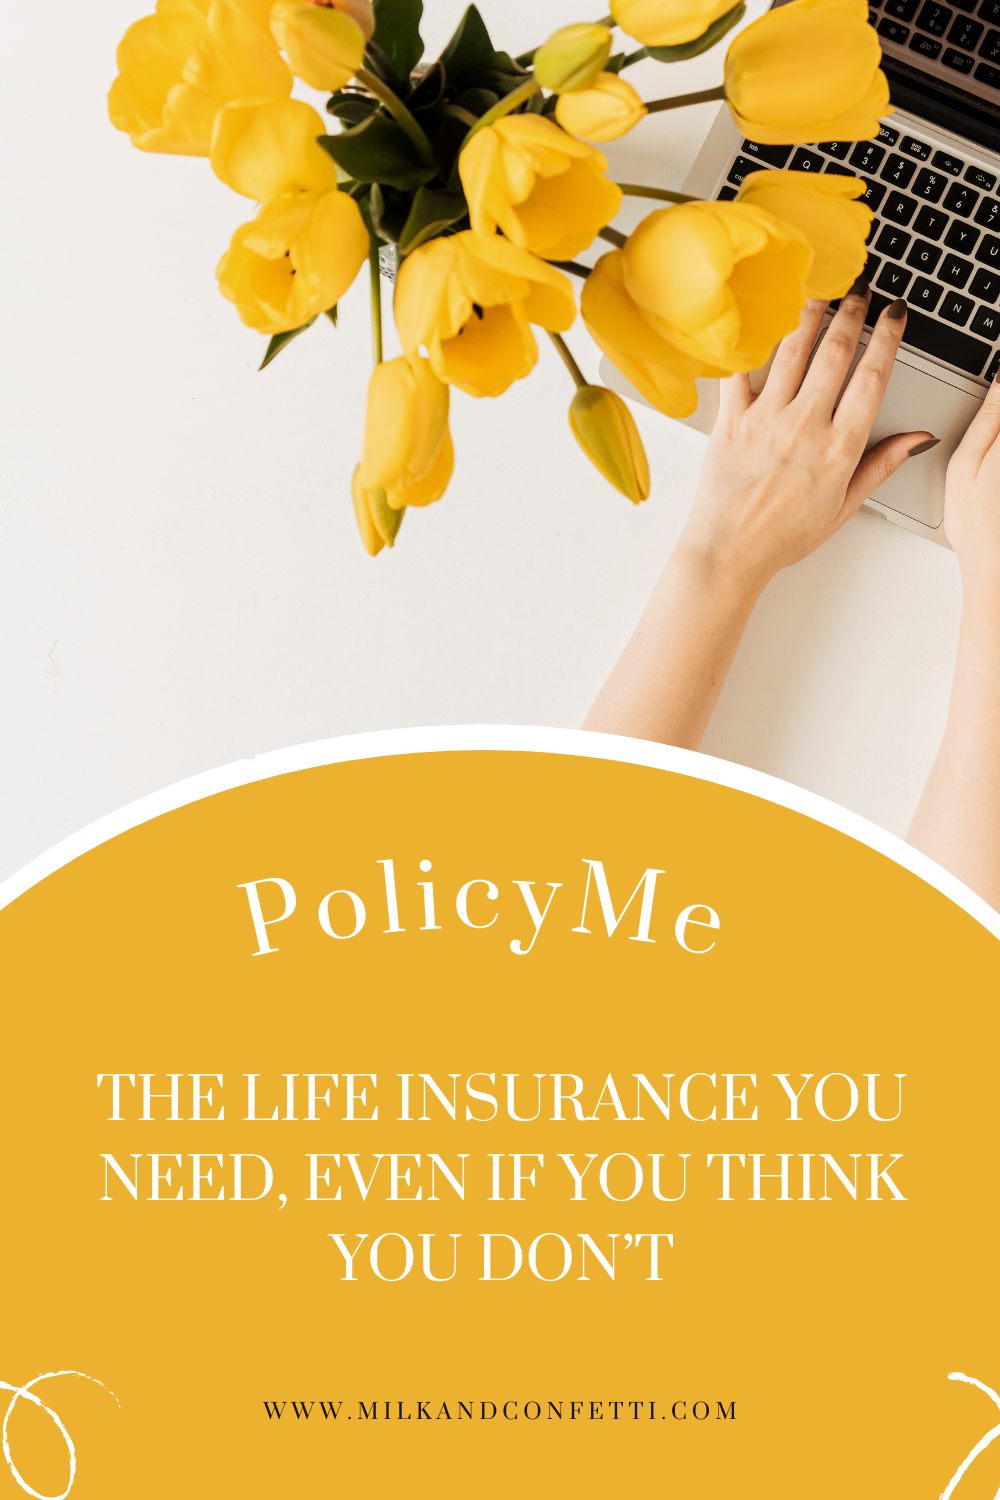 PolicyMe is the life insurance you need.